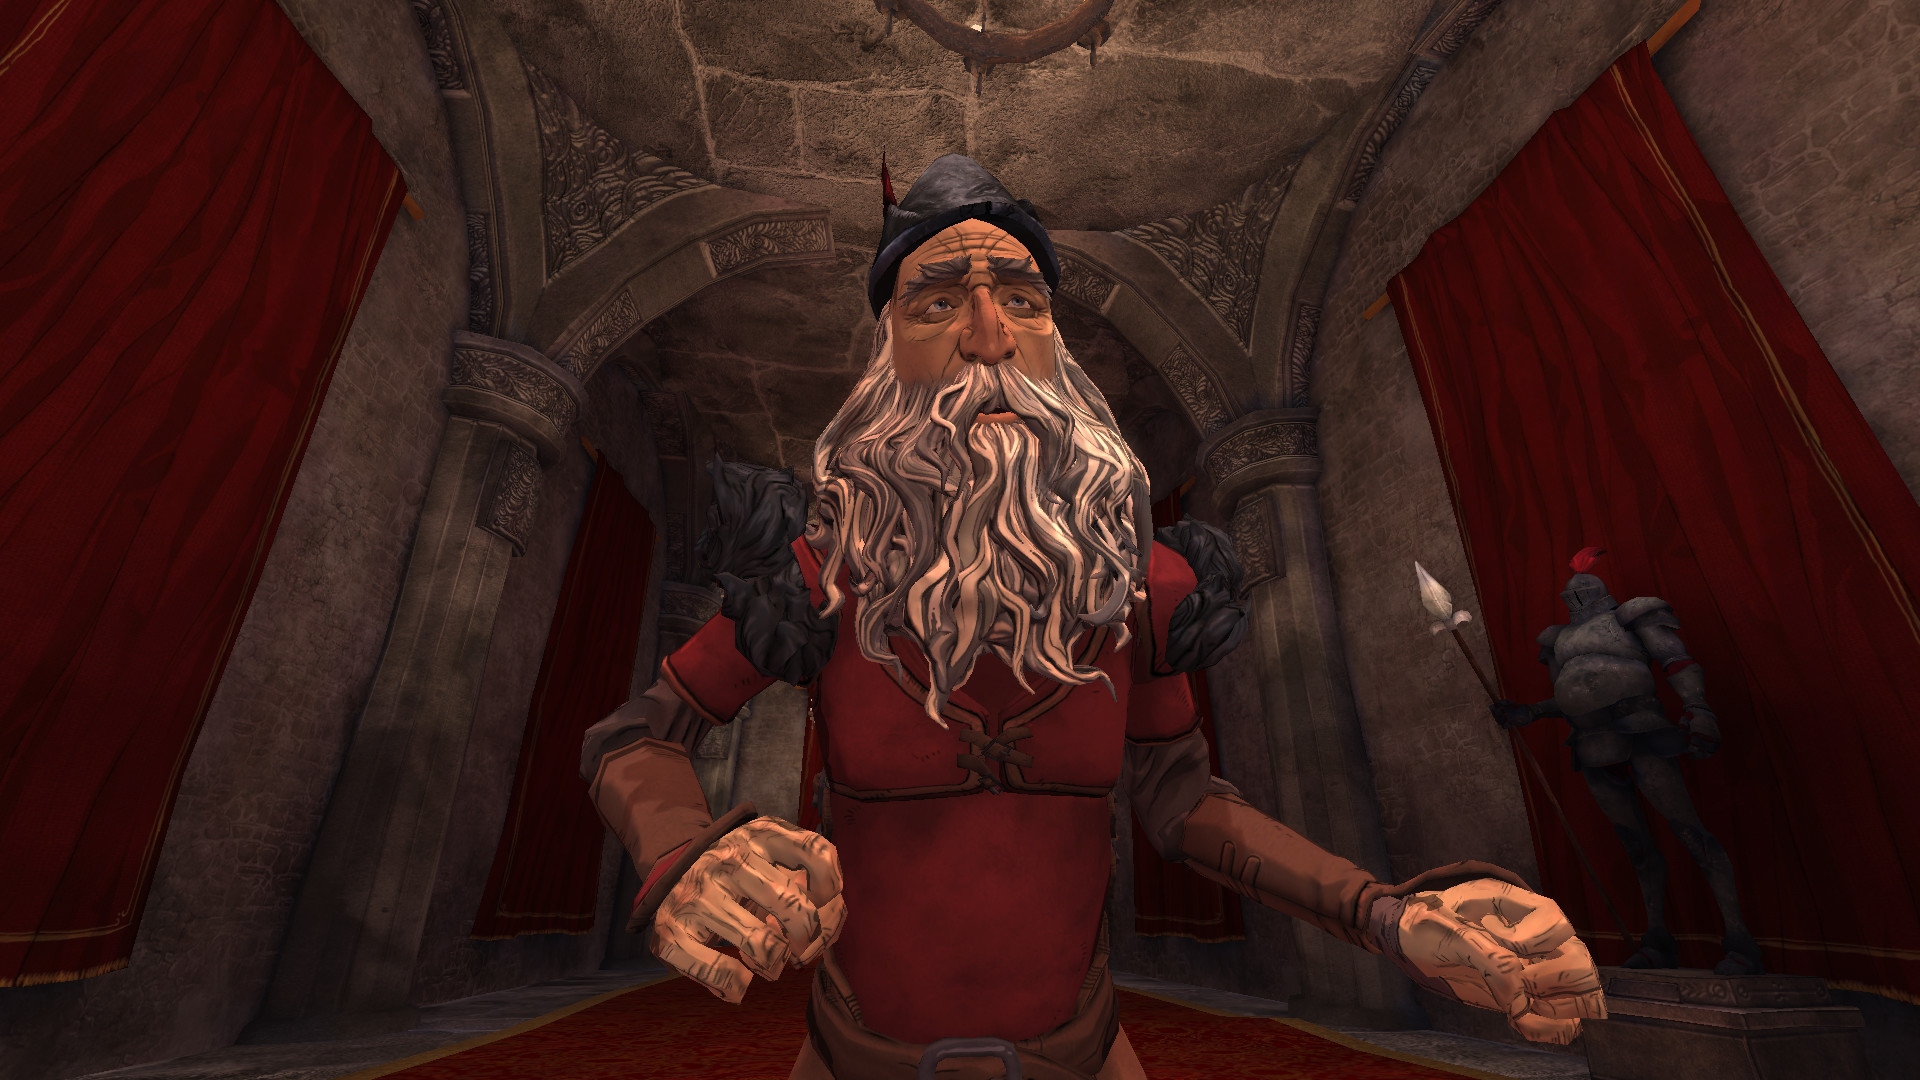 King's Quest - Chapter 5: The Good Knight screenshot